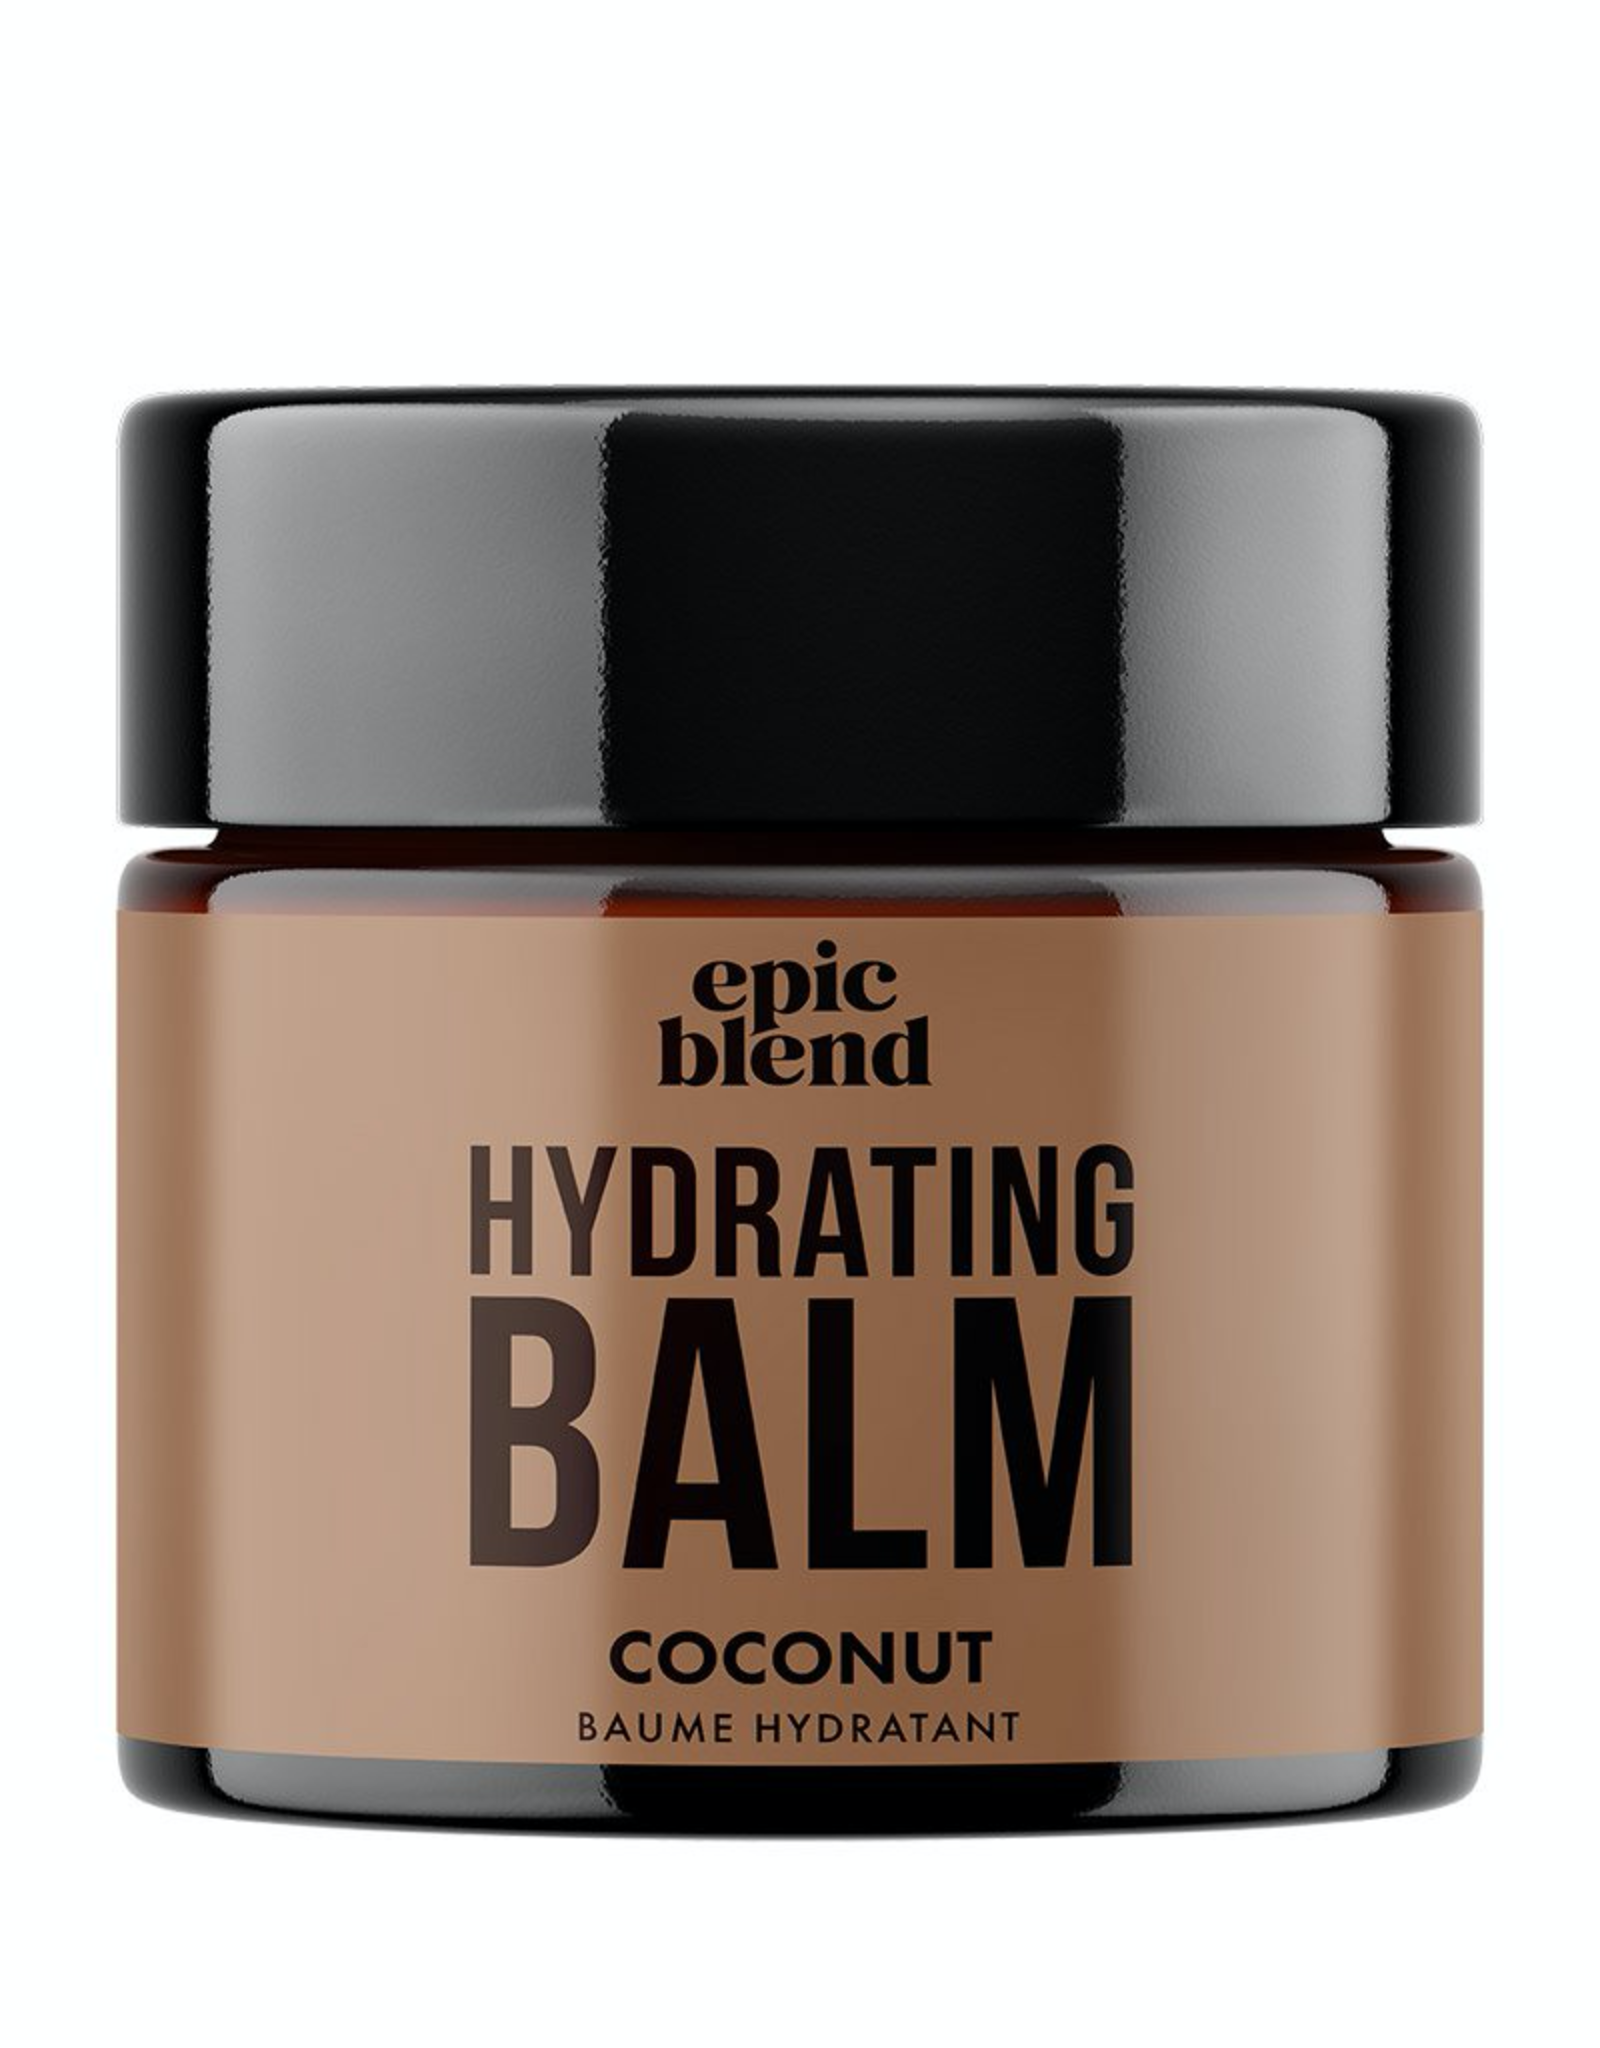 Epic Blend-Body Balm - Coconut 1 oz